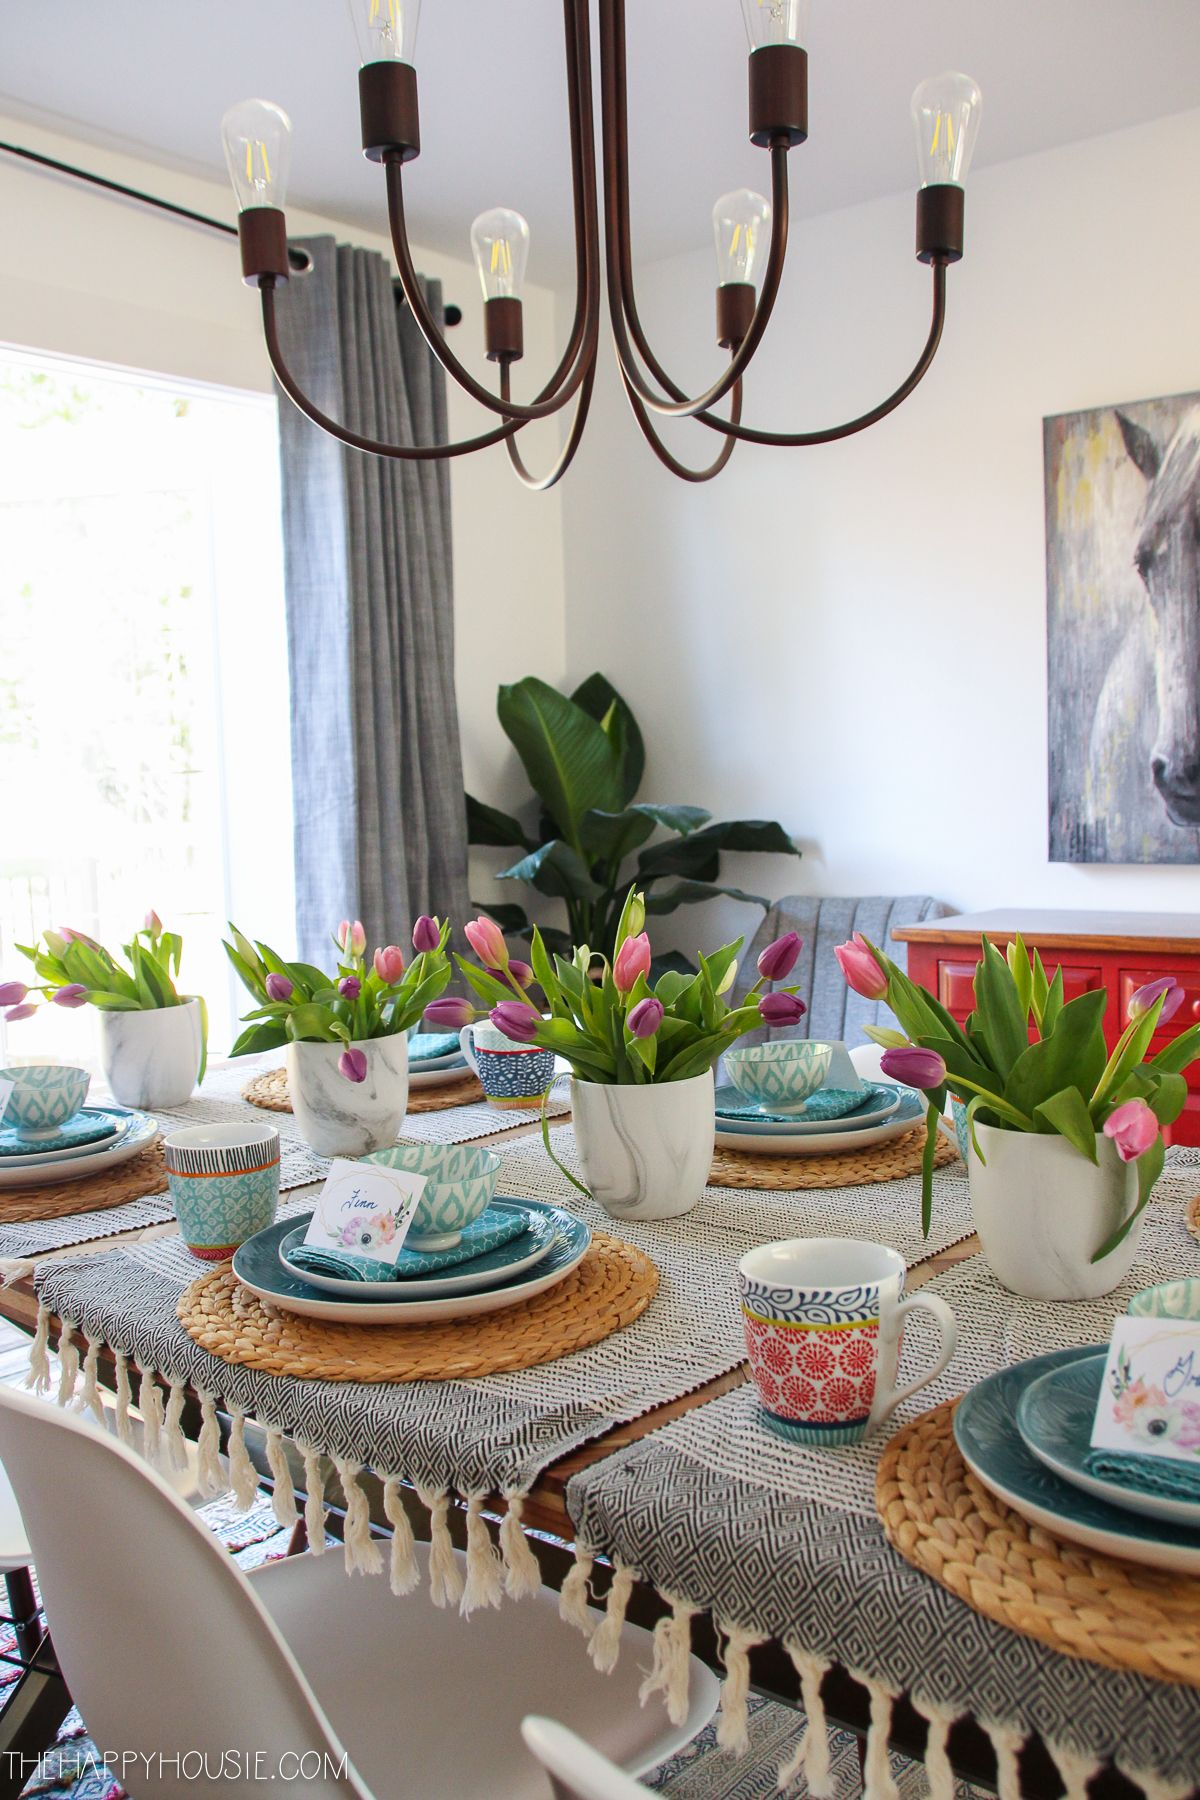 simple boho chic spring dining room tablescape boho chic interior decor bohemian bedroom on boho chic dining room kitchen dining tables id=92730